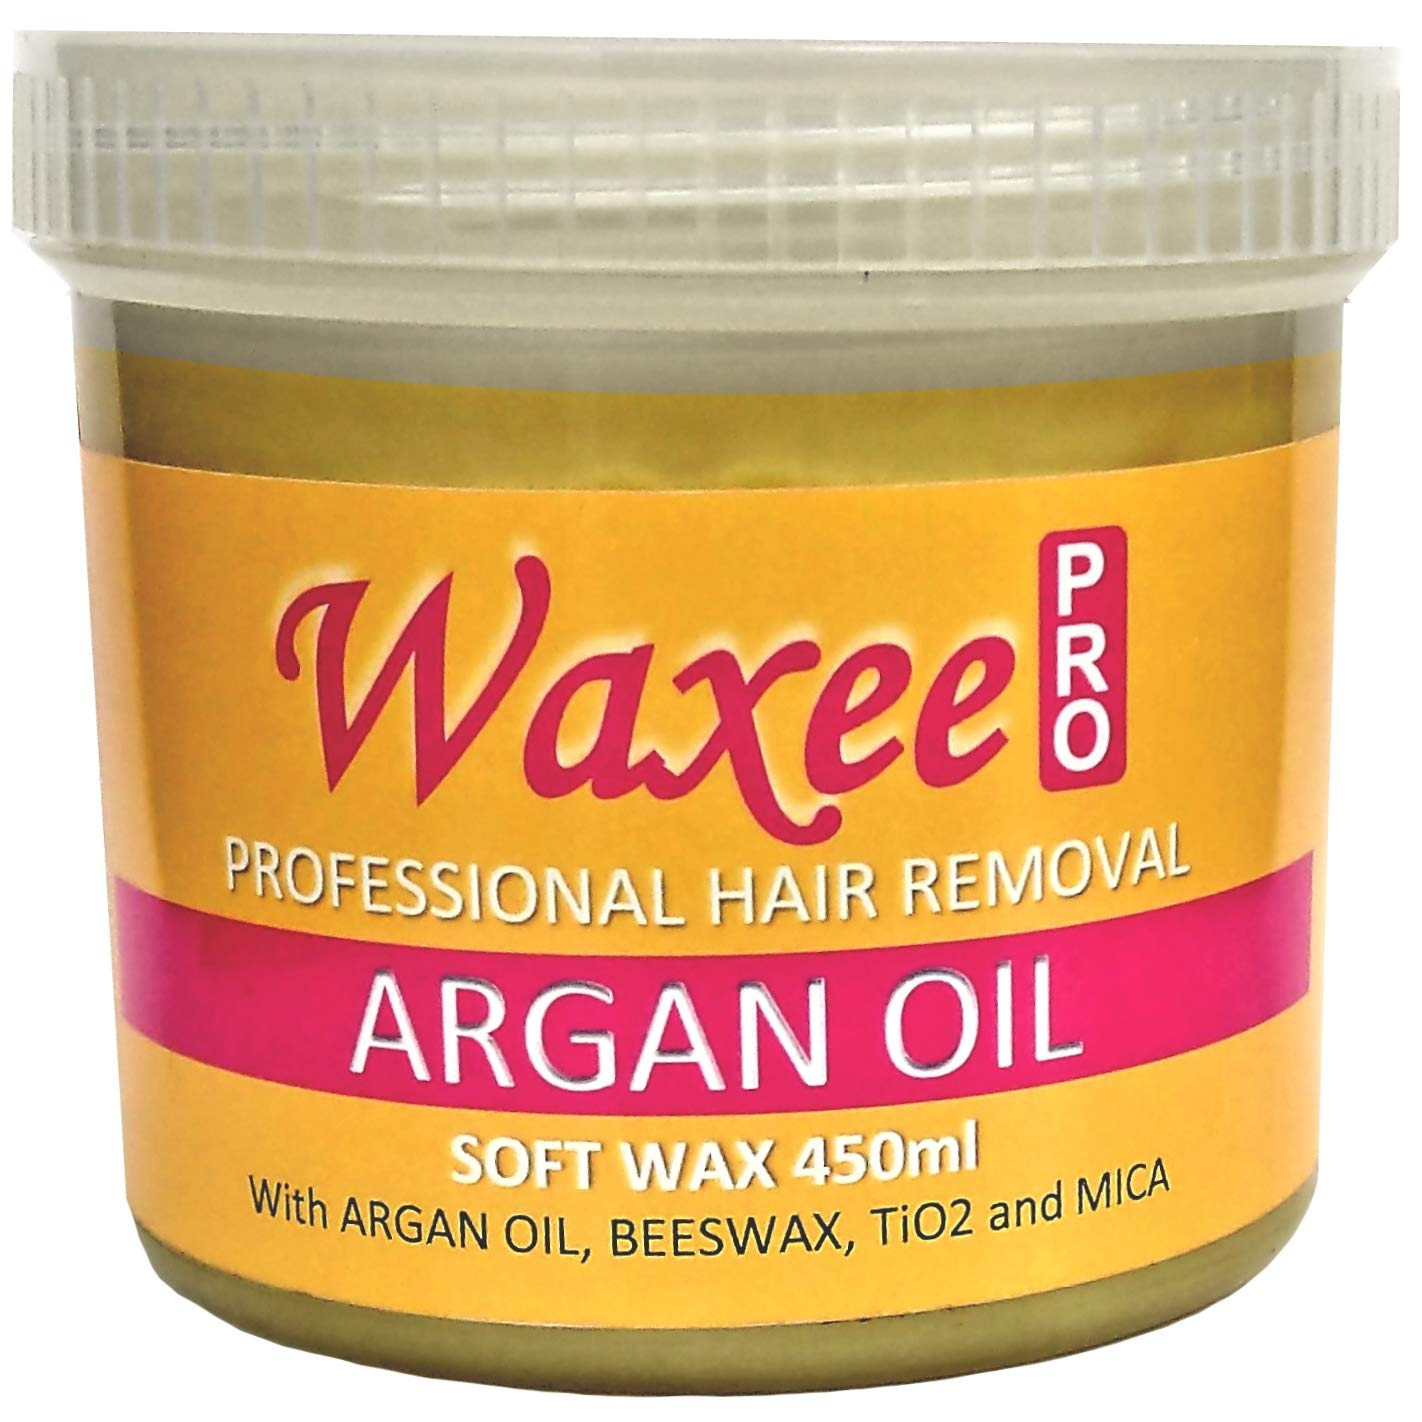 Soft pot strip wax 450ml with Natural BEESWAX, Professional hair removal. (1 x 450ml, Lavender (Top formula)) Waxee